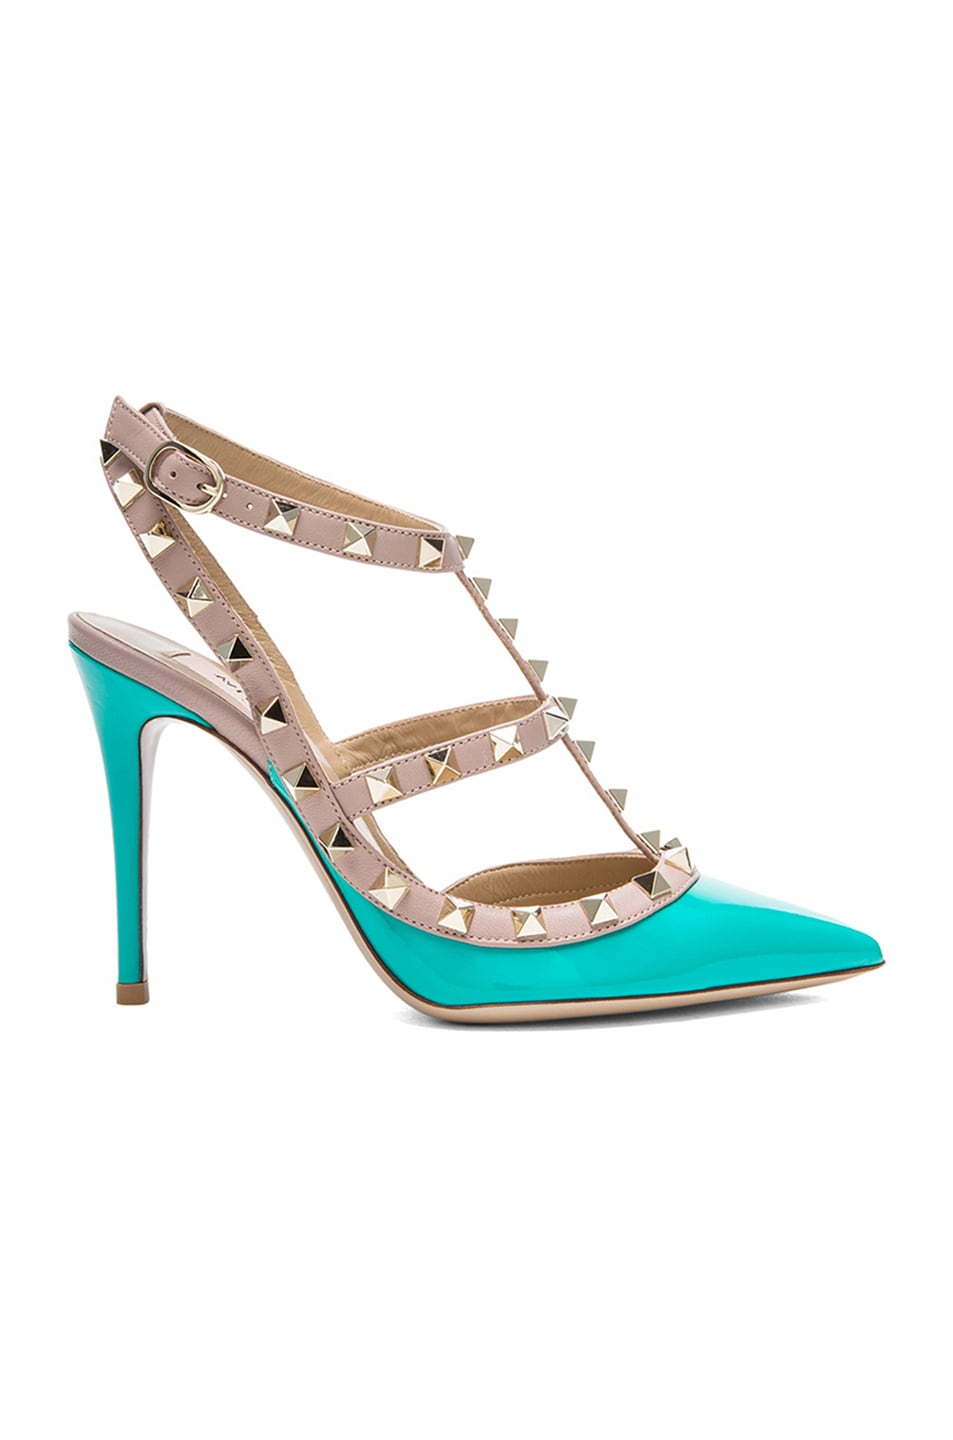 Image 1 of Valentino Rockstud Patent Leather Slingbacks T.100 in Oppoline Green